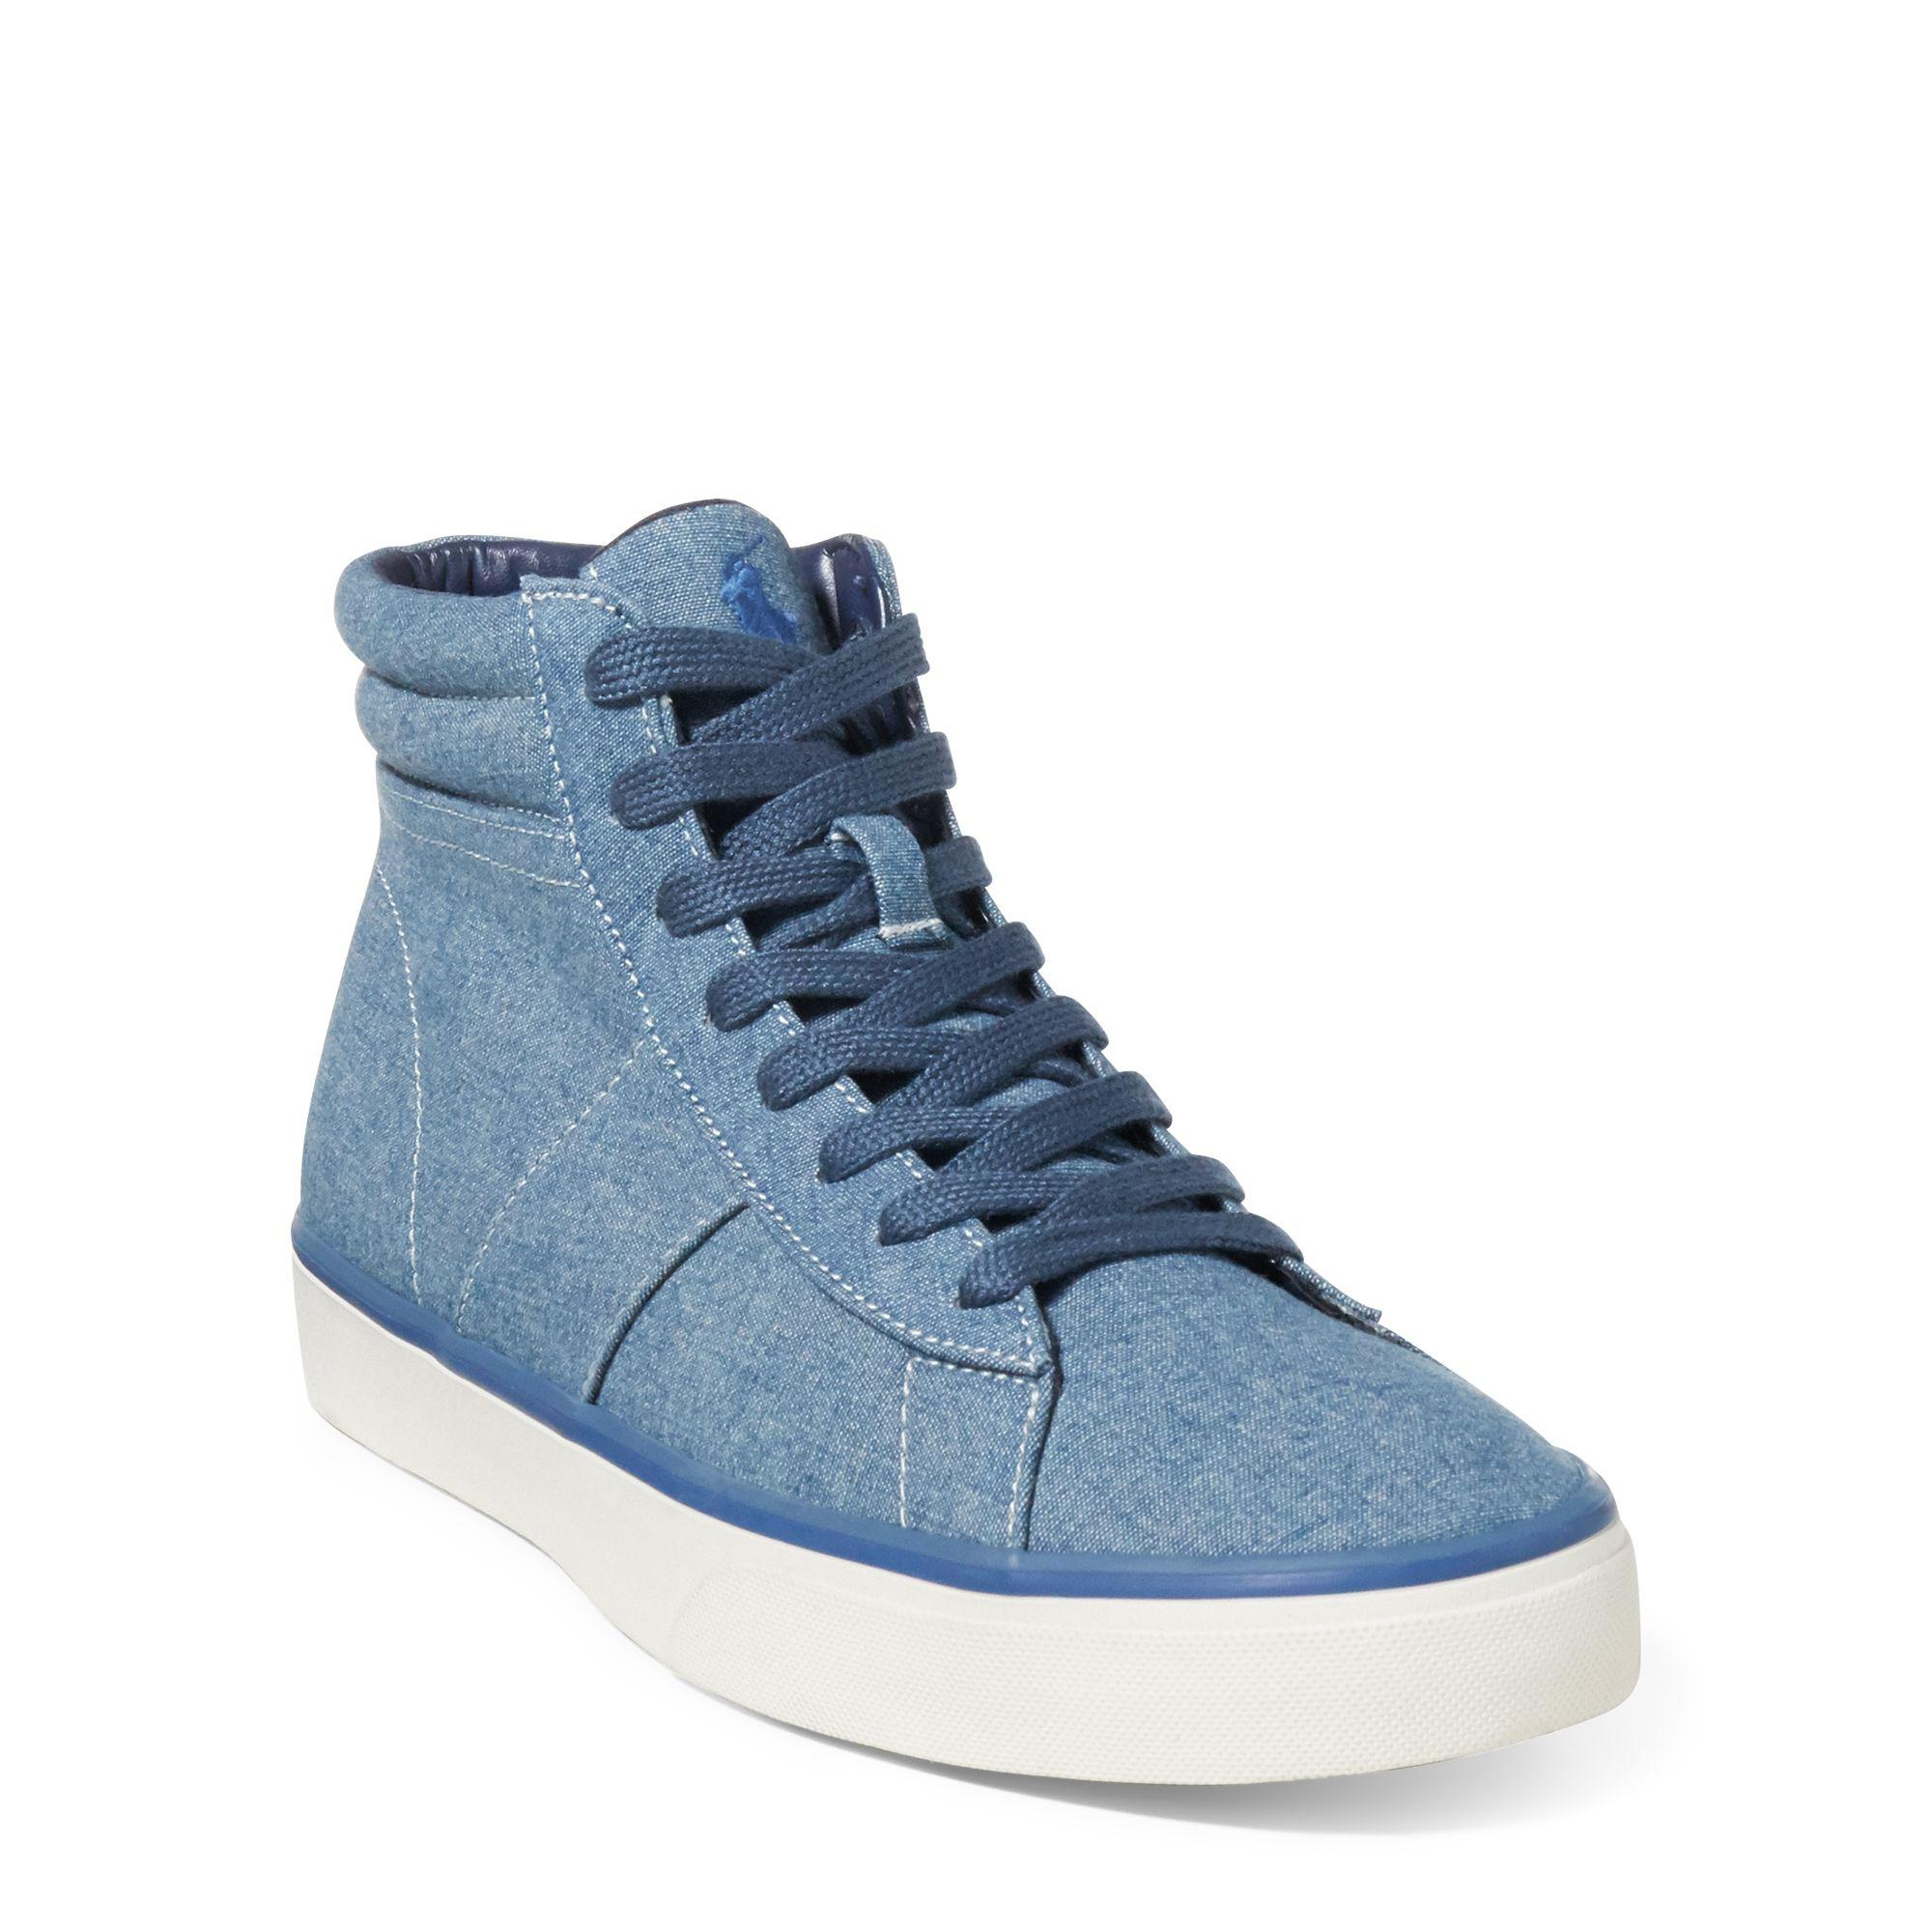 Ralph Lauren Shaw Chambray High-Top Sneaker Grey 9.5 7GJiz8OZ